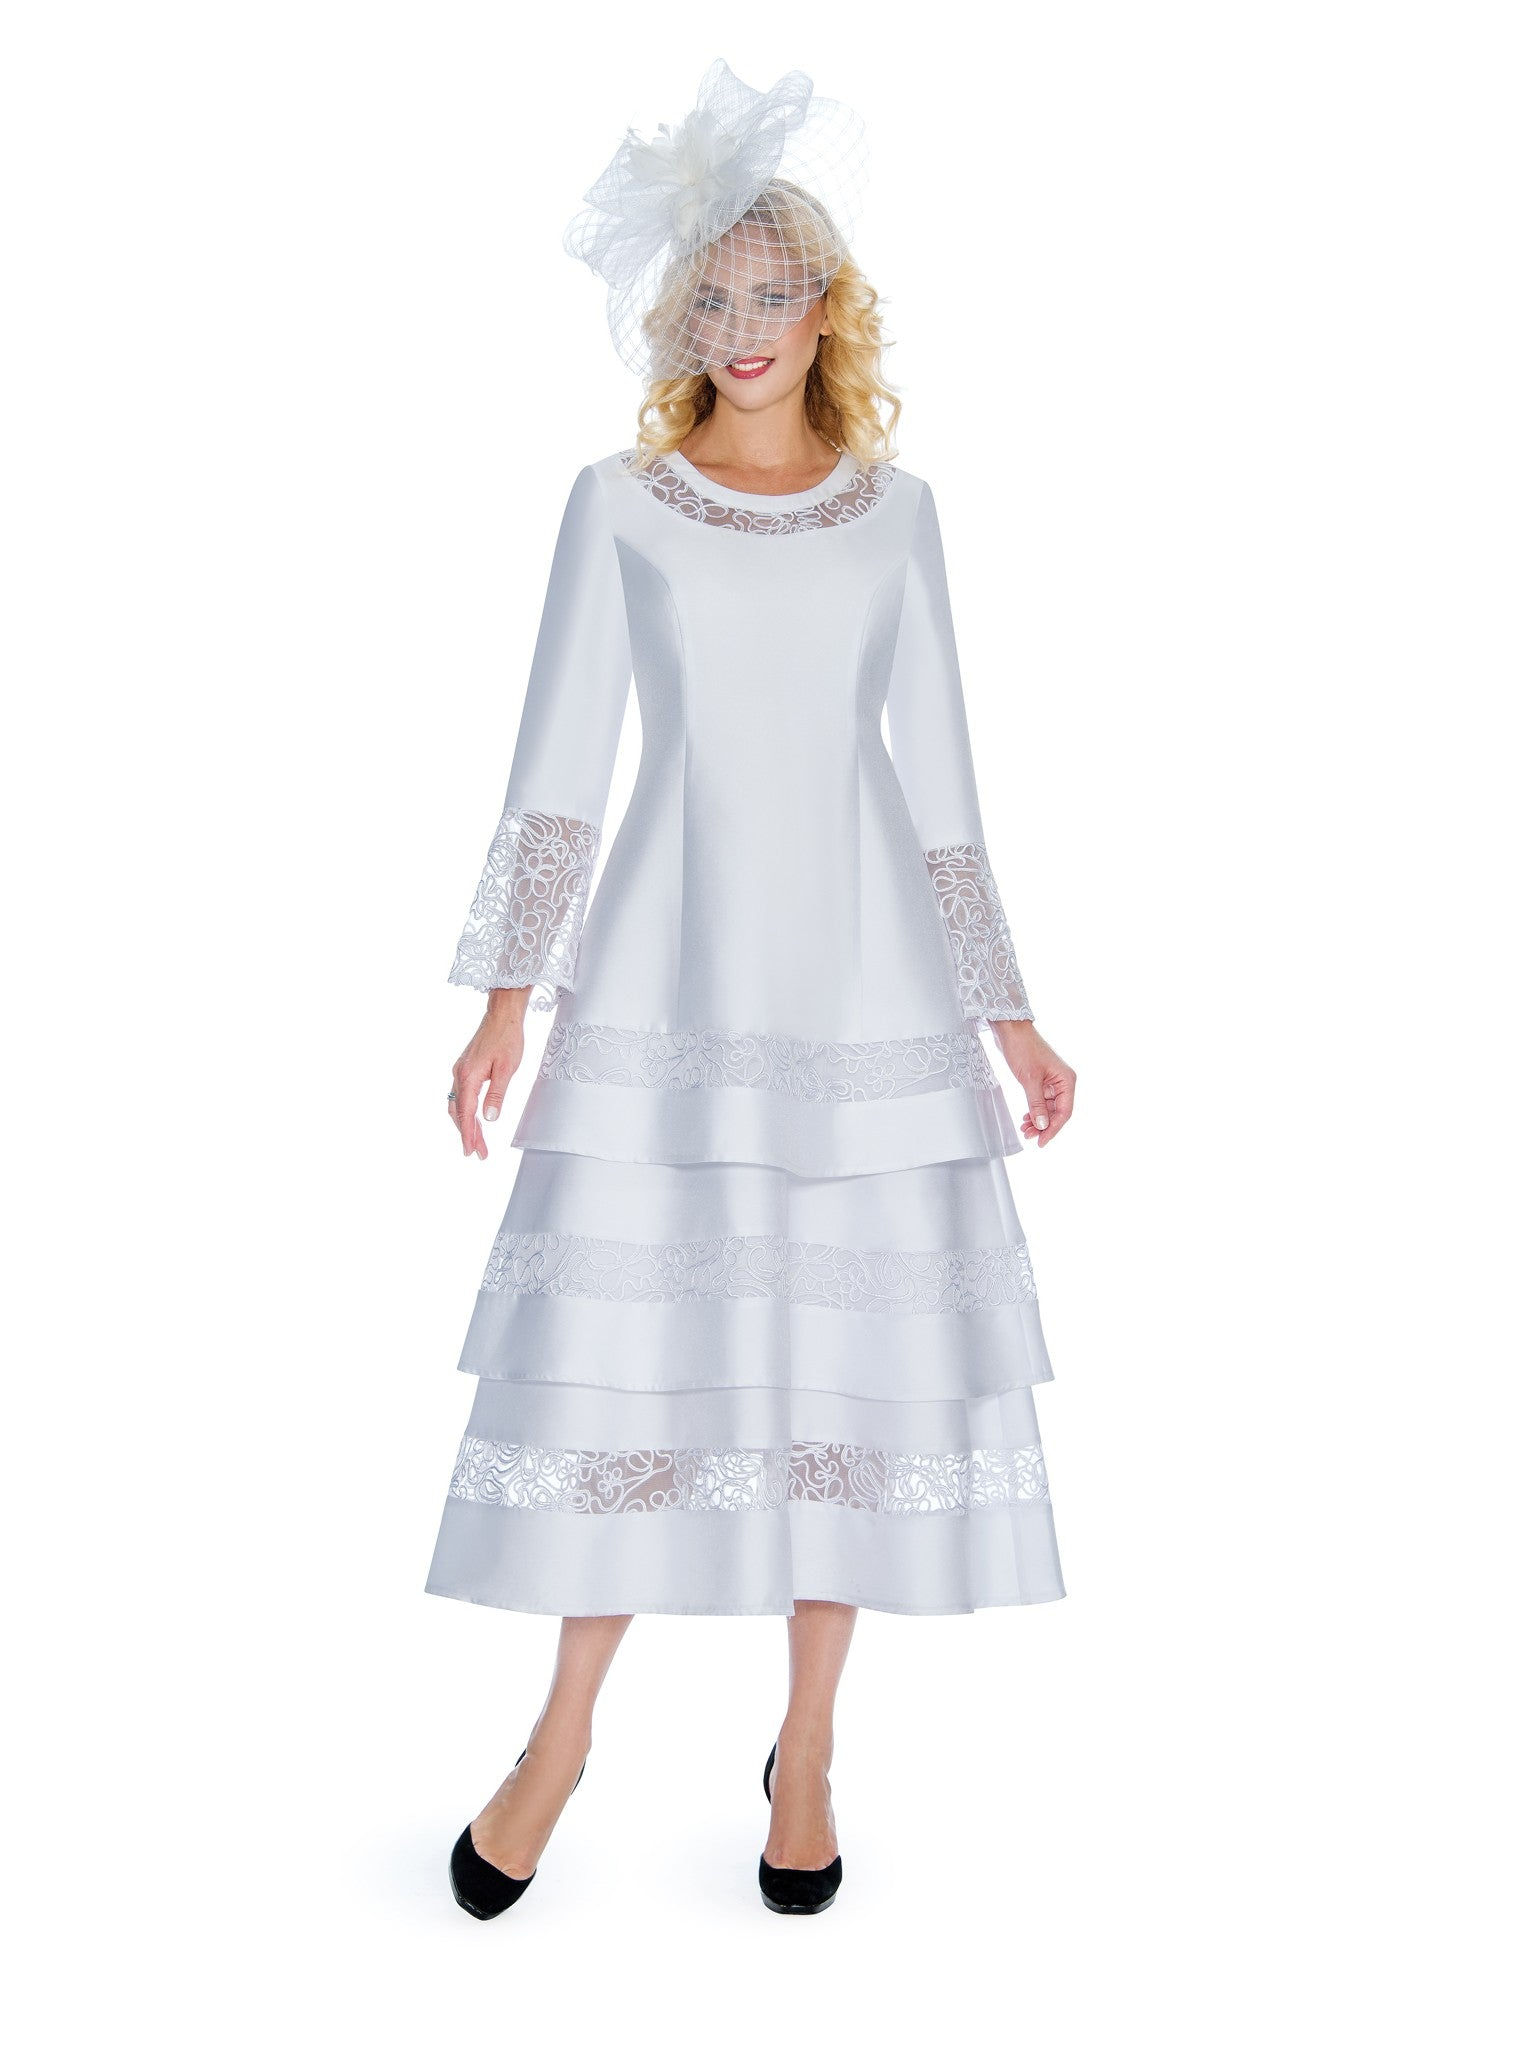 1pc Bell Sleeve 3-Tier Dress w/ Sheer Lace Trim - Plus Size